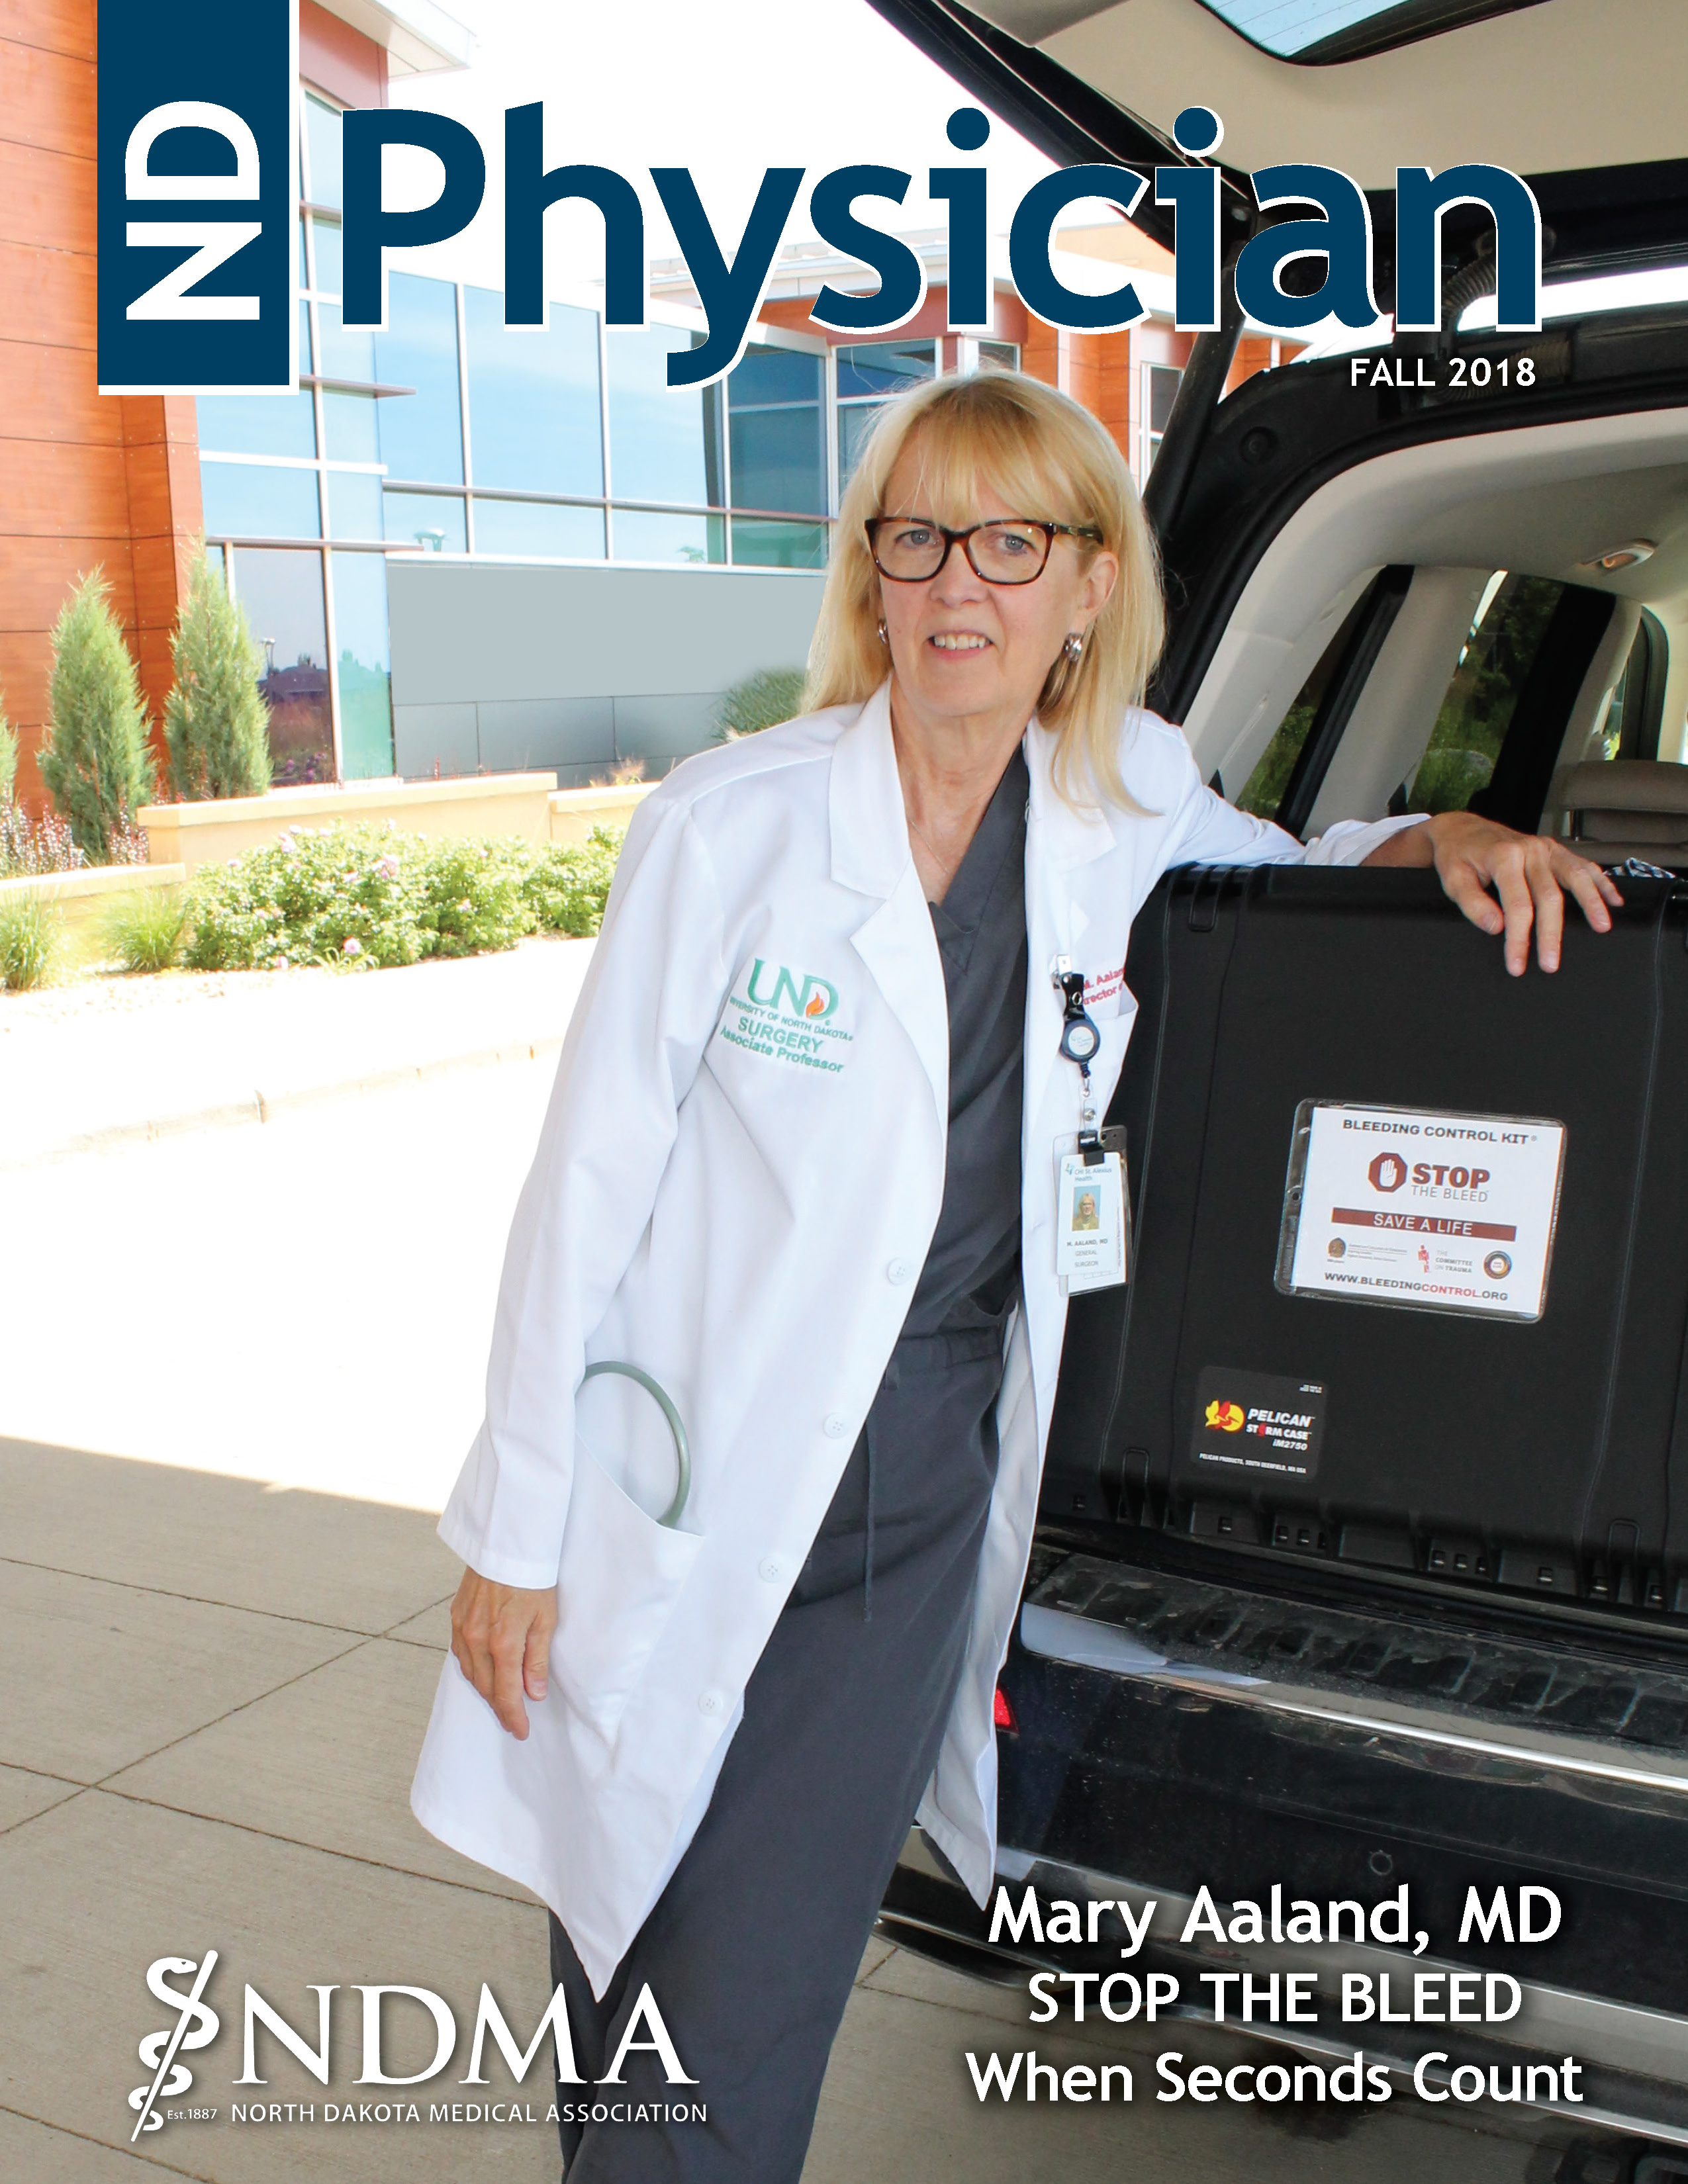 ND Physician Fall 2018 magazine cover